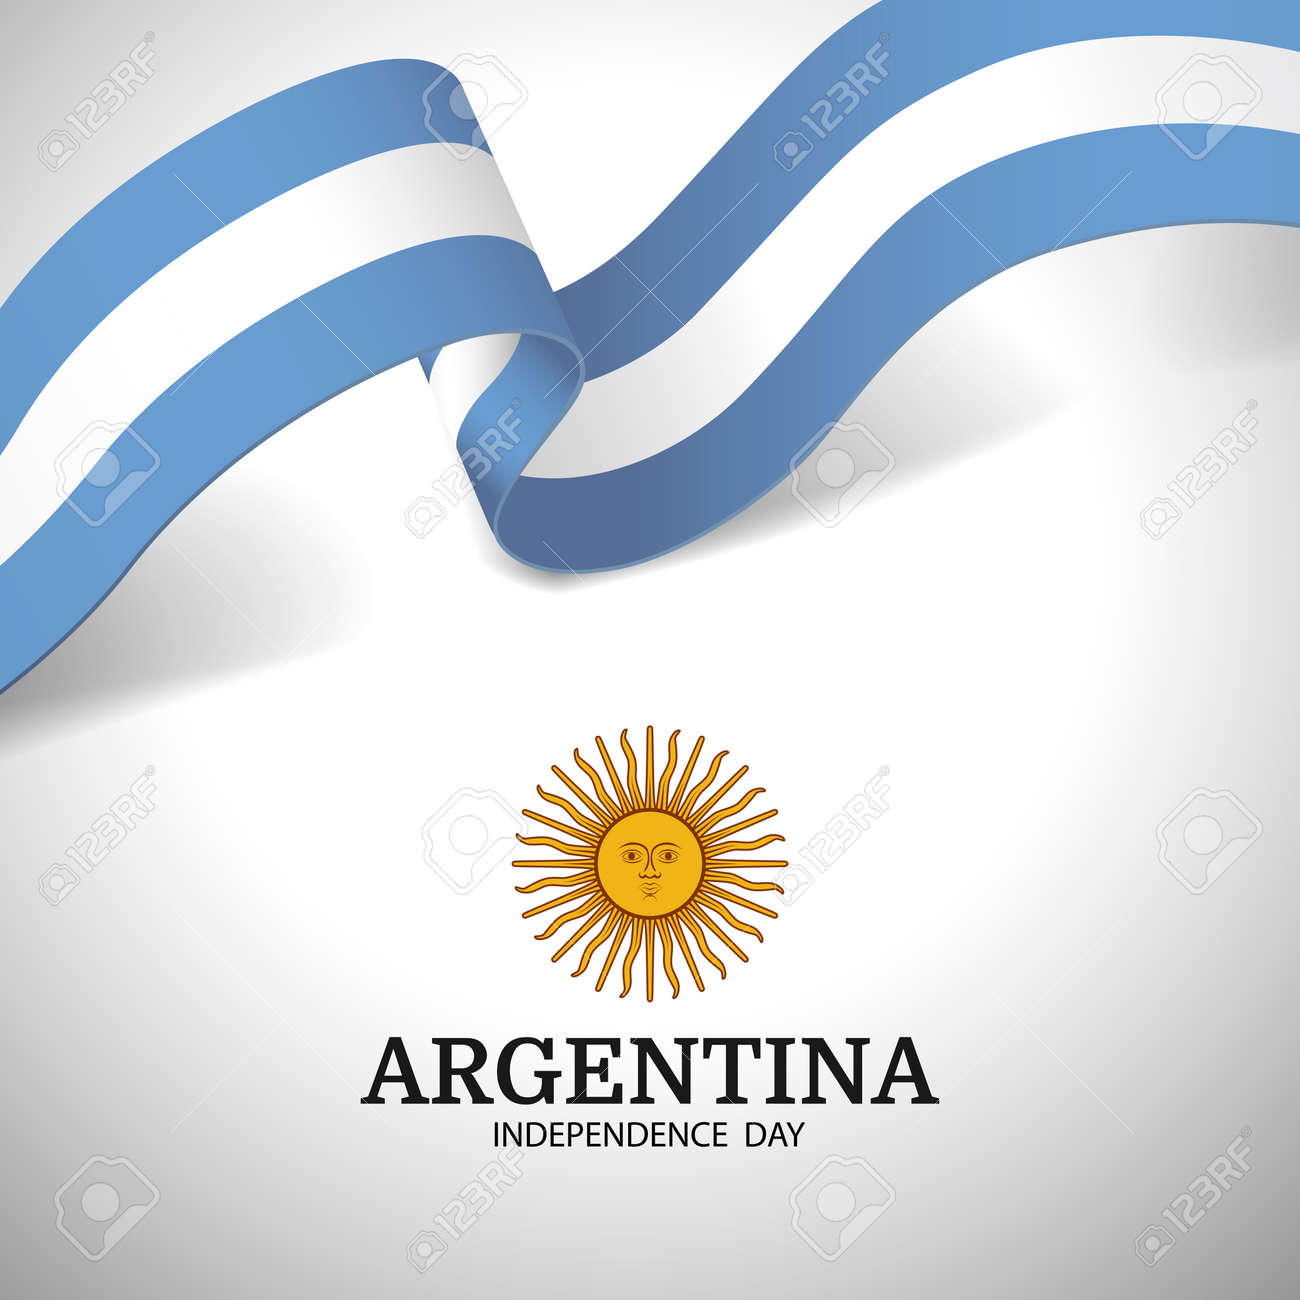 Vector Illustration of Independence Day of Argentina. - 169318185